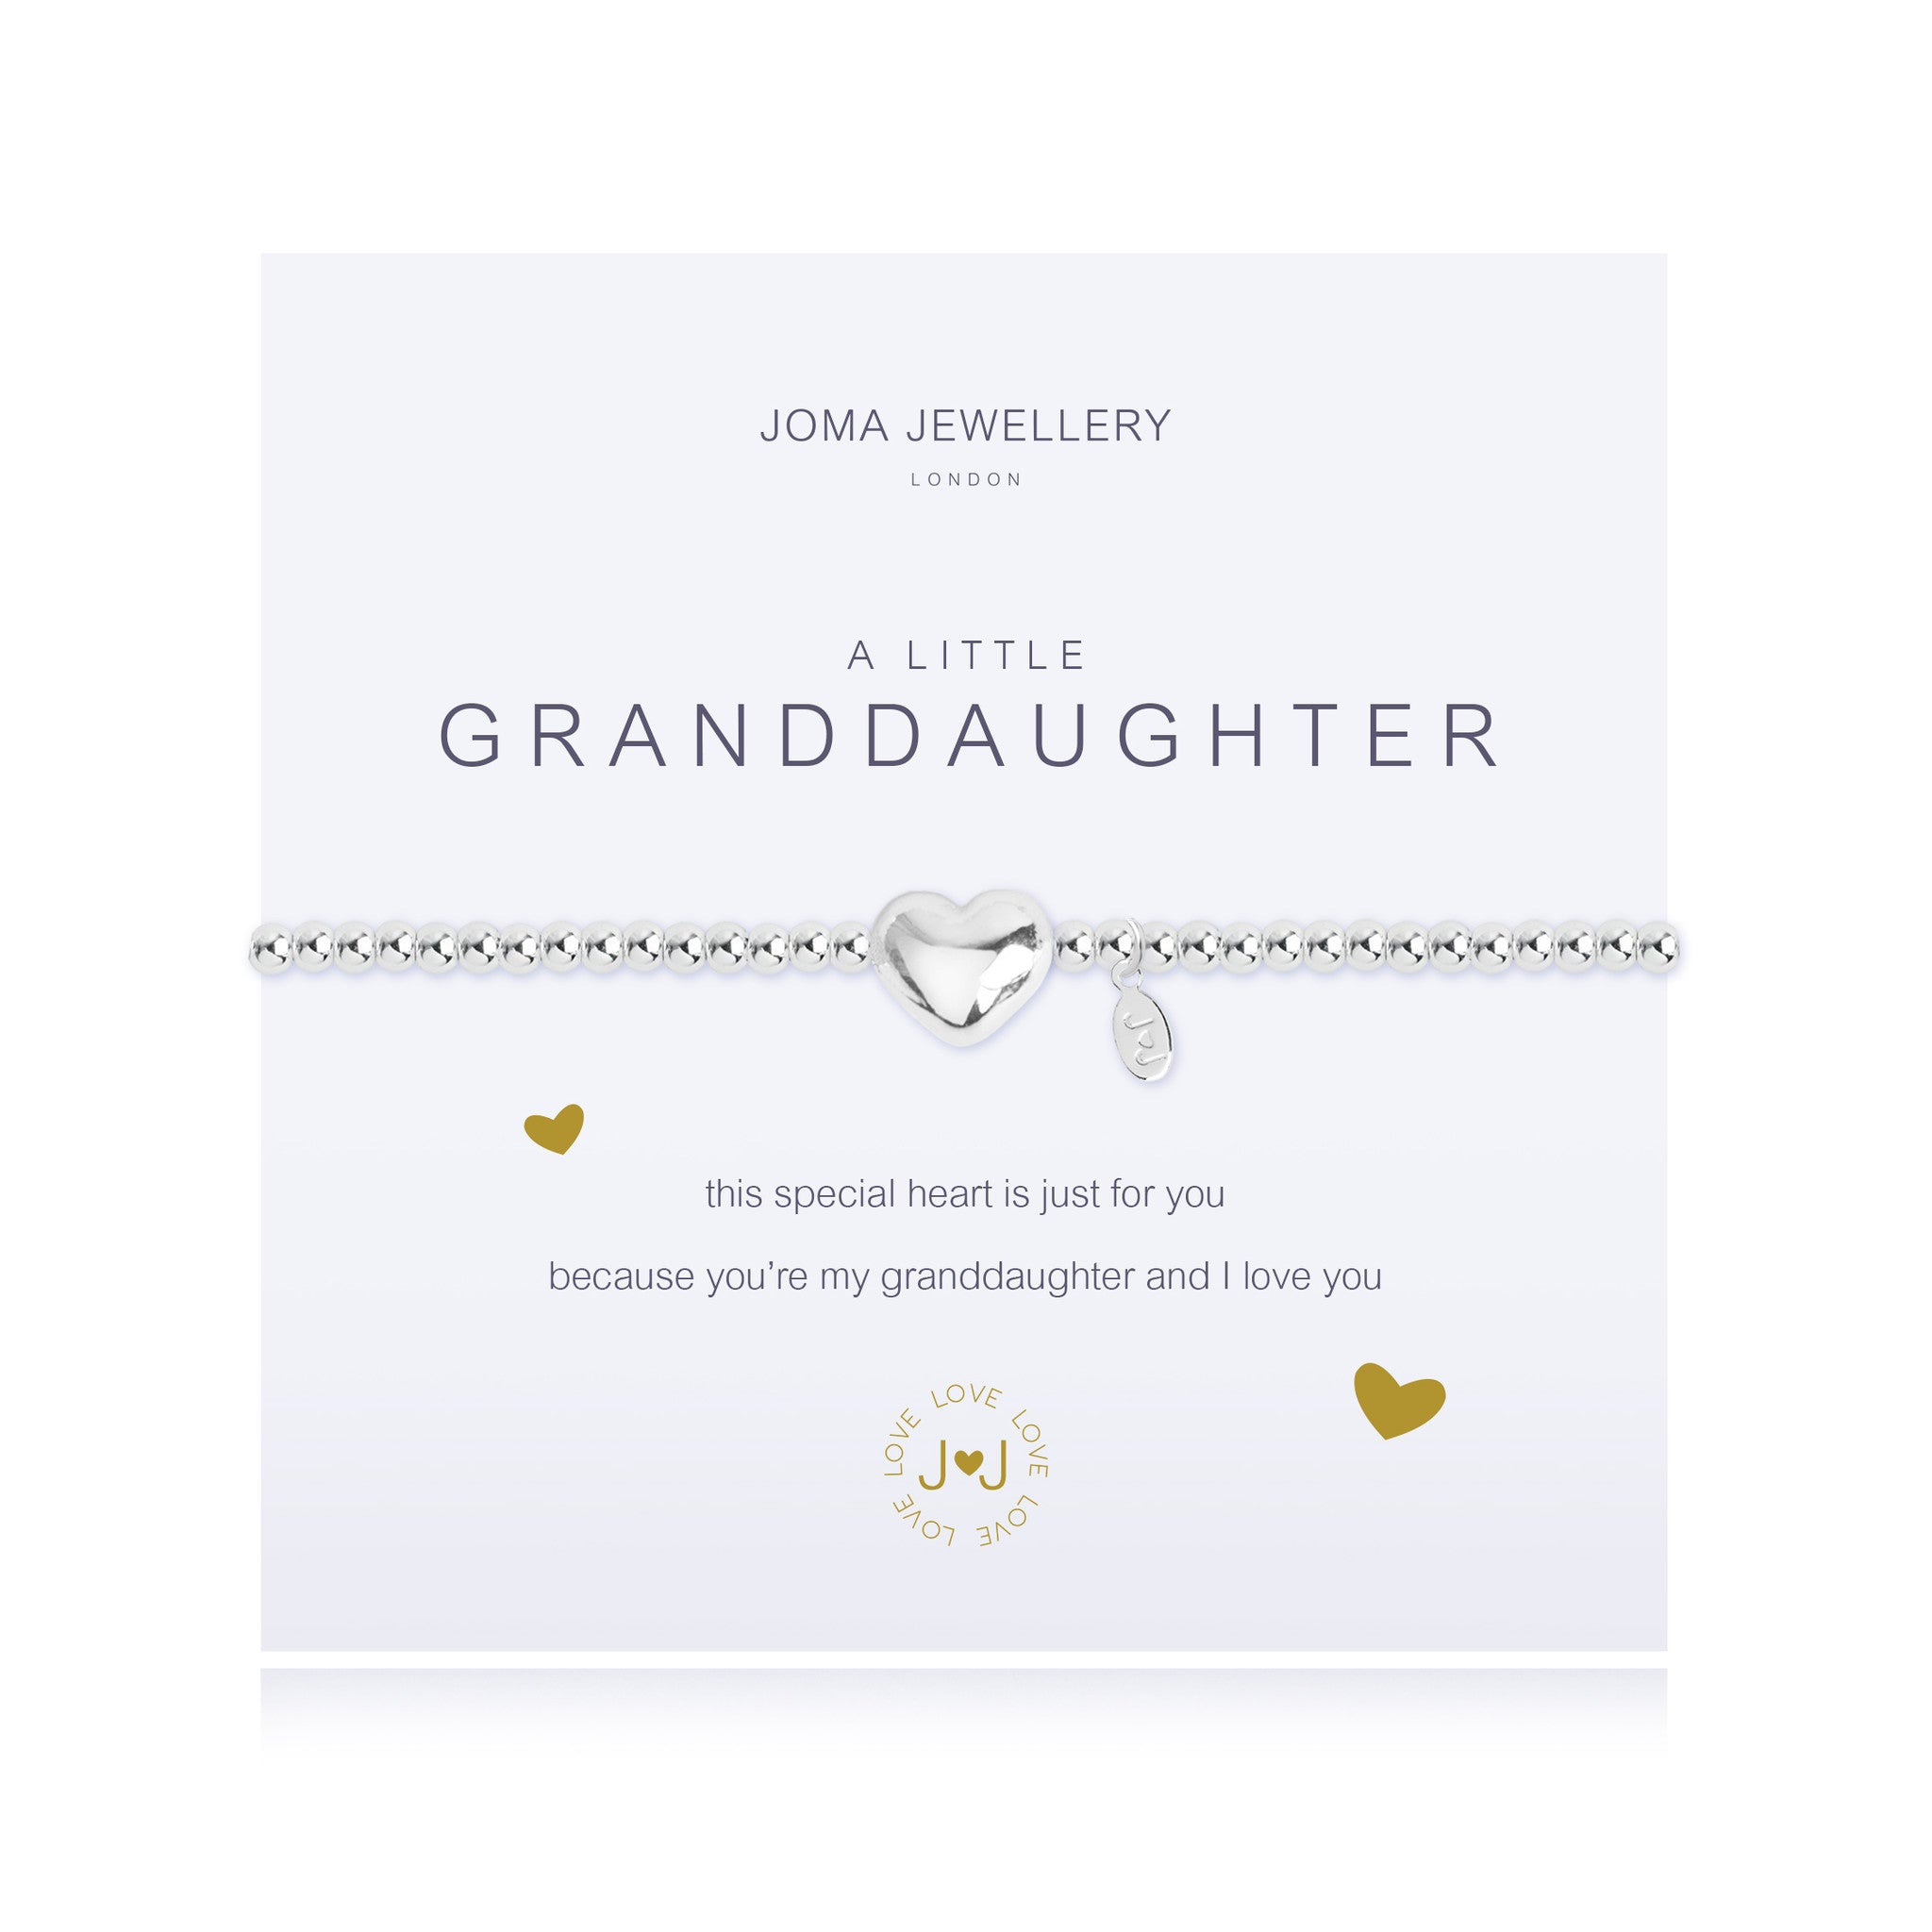 Joma Jewellery A Little Granddaughter Bracelet  - 2158